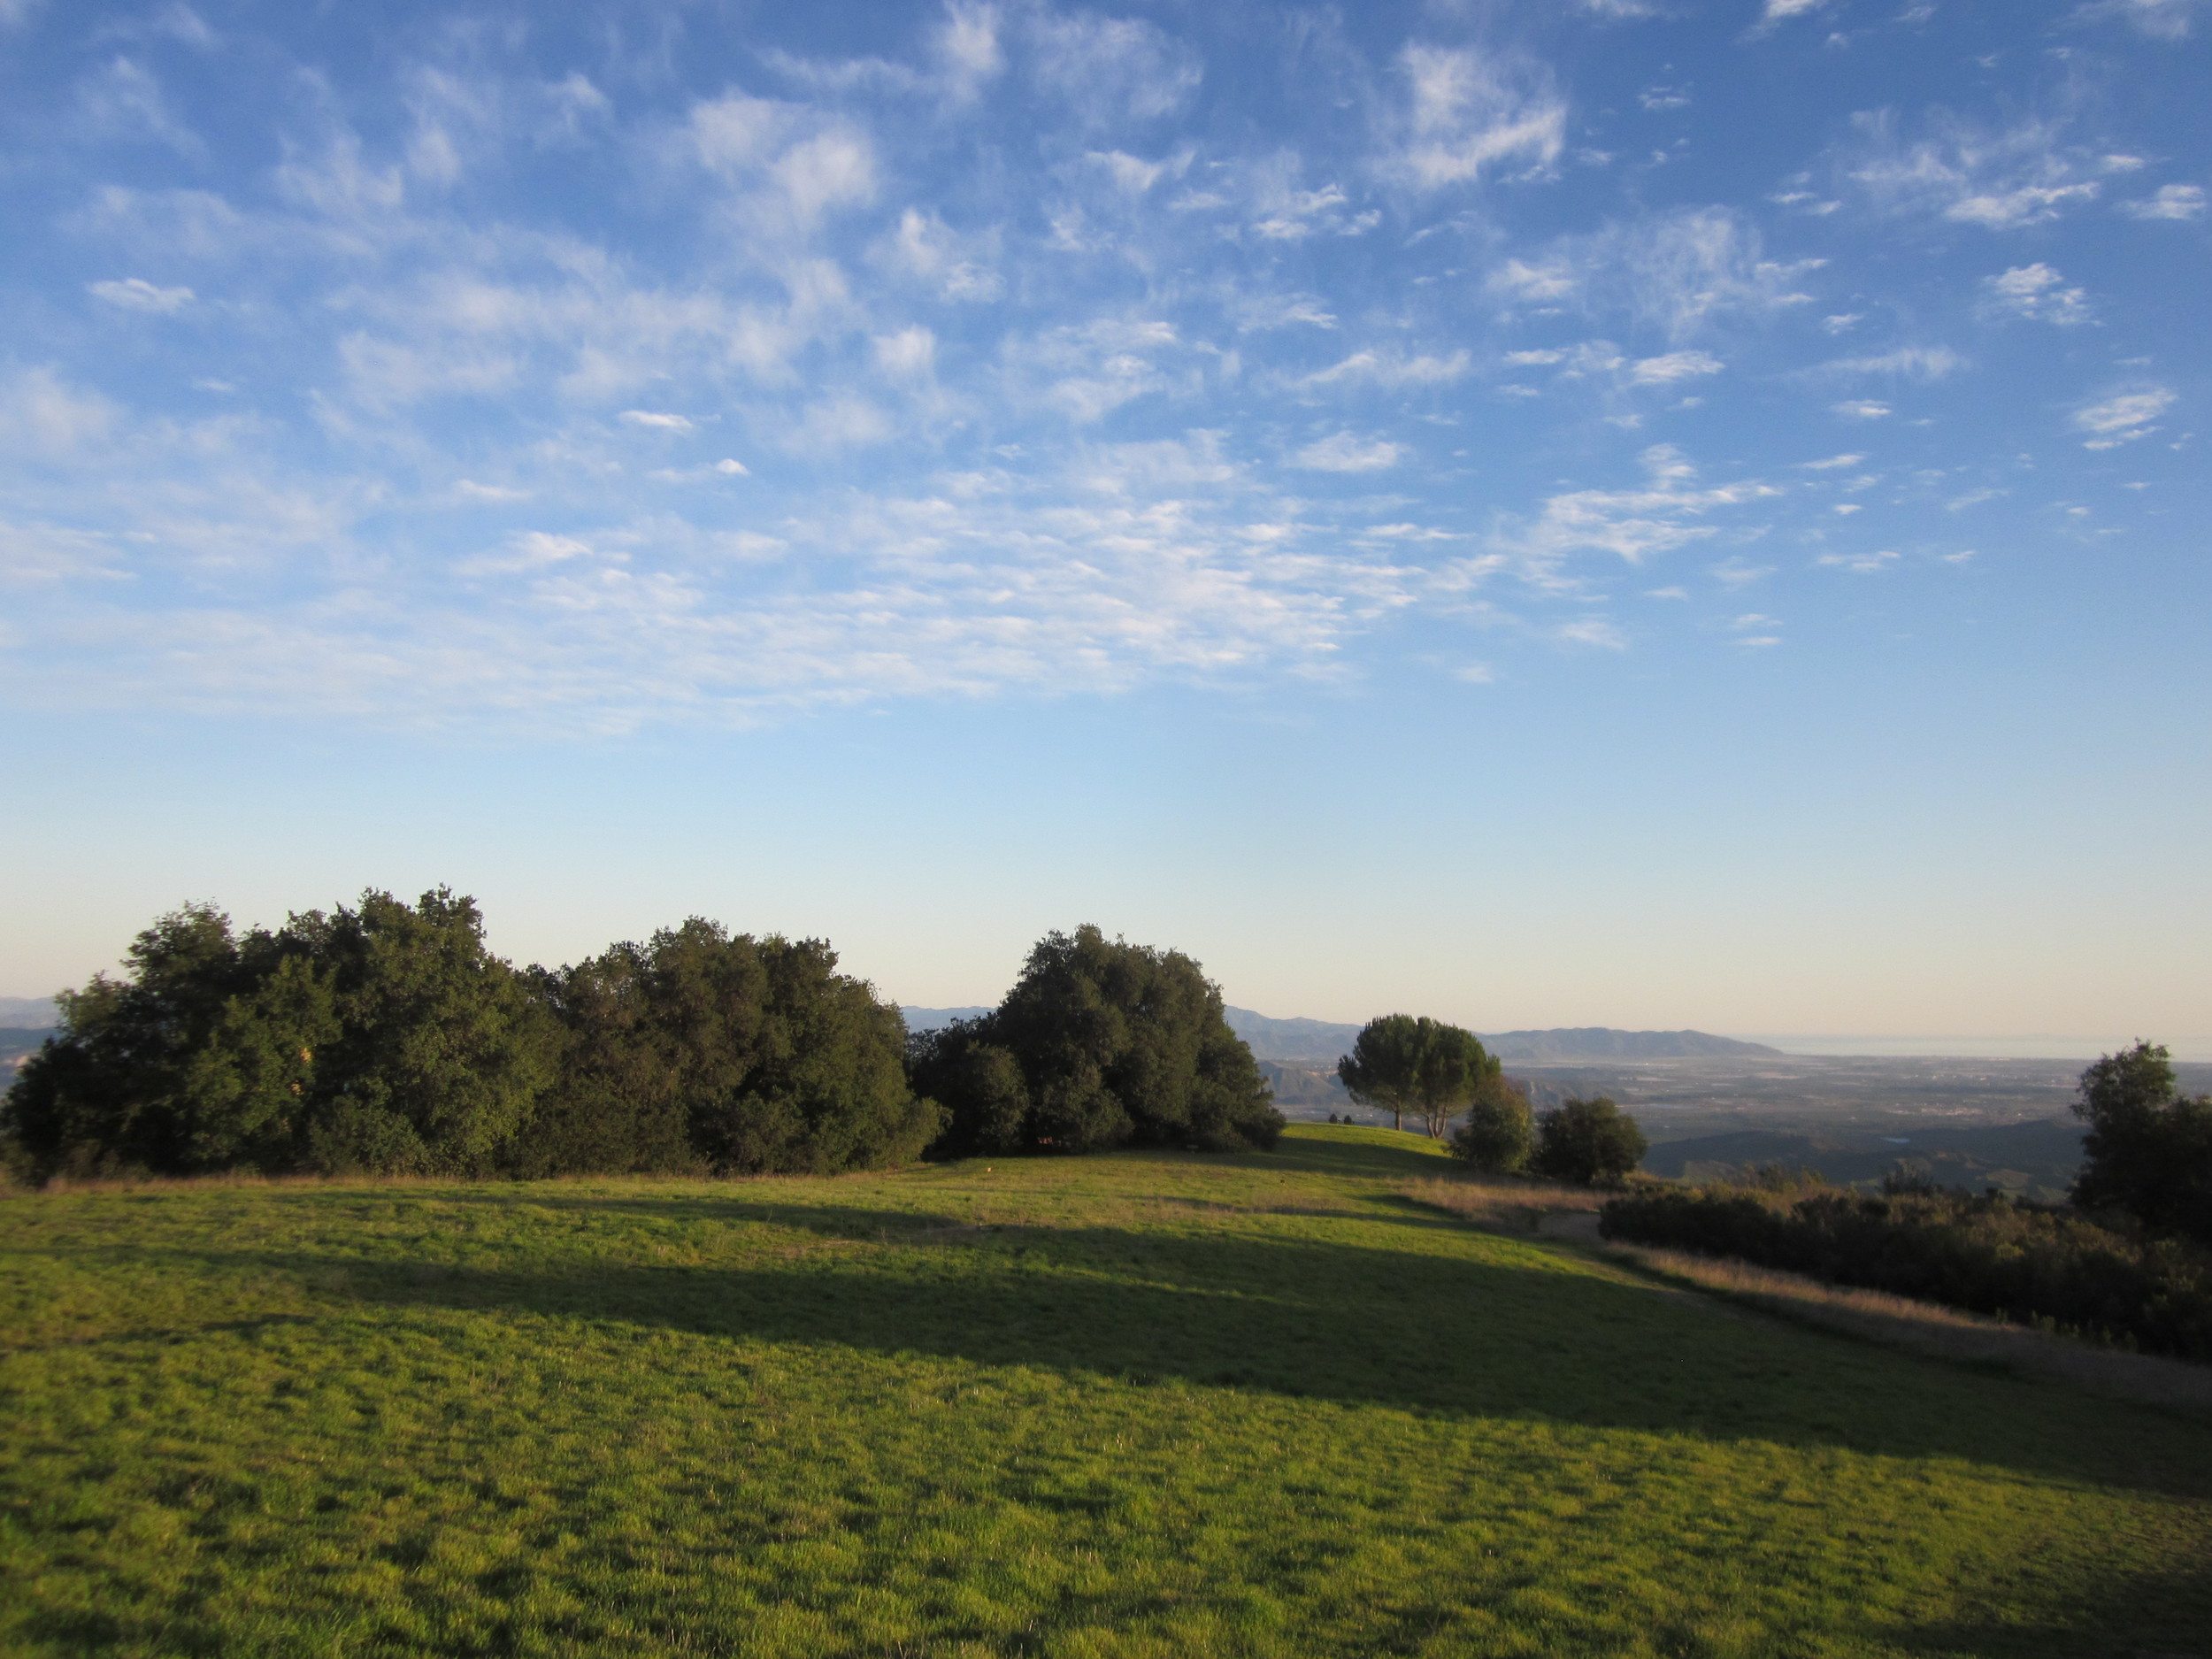 BLUE SKIES and green meadows signal winter at Meher Mount. This view is looking toward Baba's Tree with the Pacific Ocean in the far background to the right. (Wayne Myers photo, 2013.)